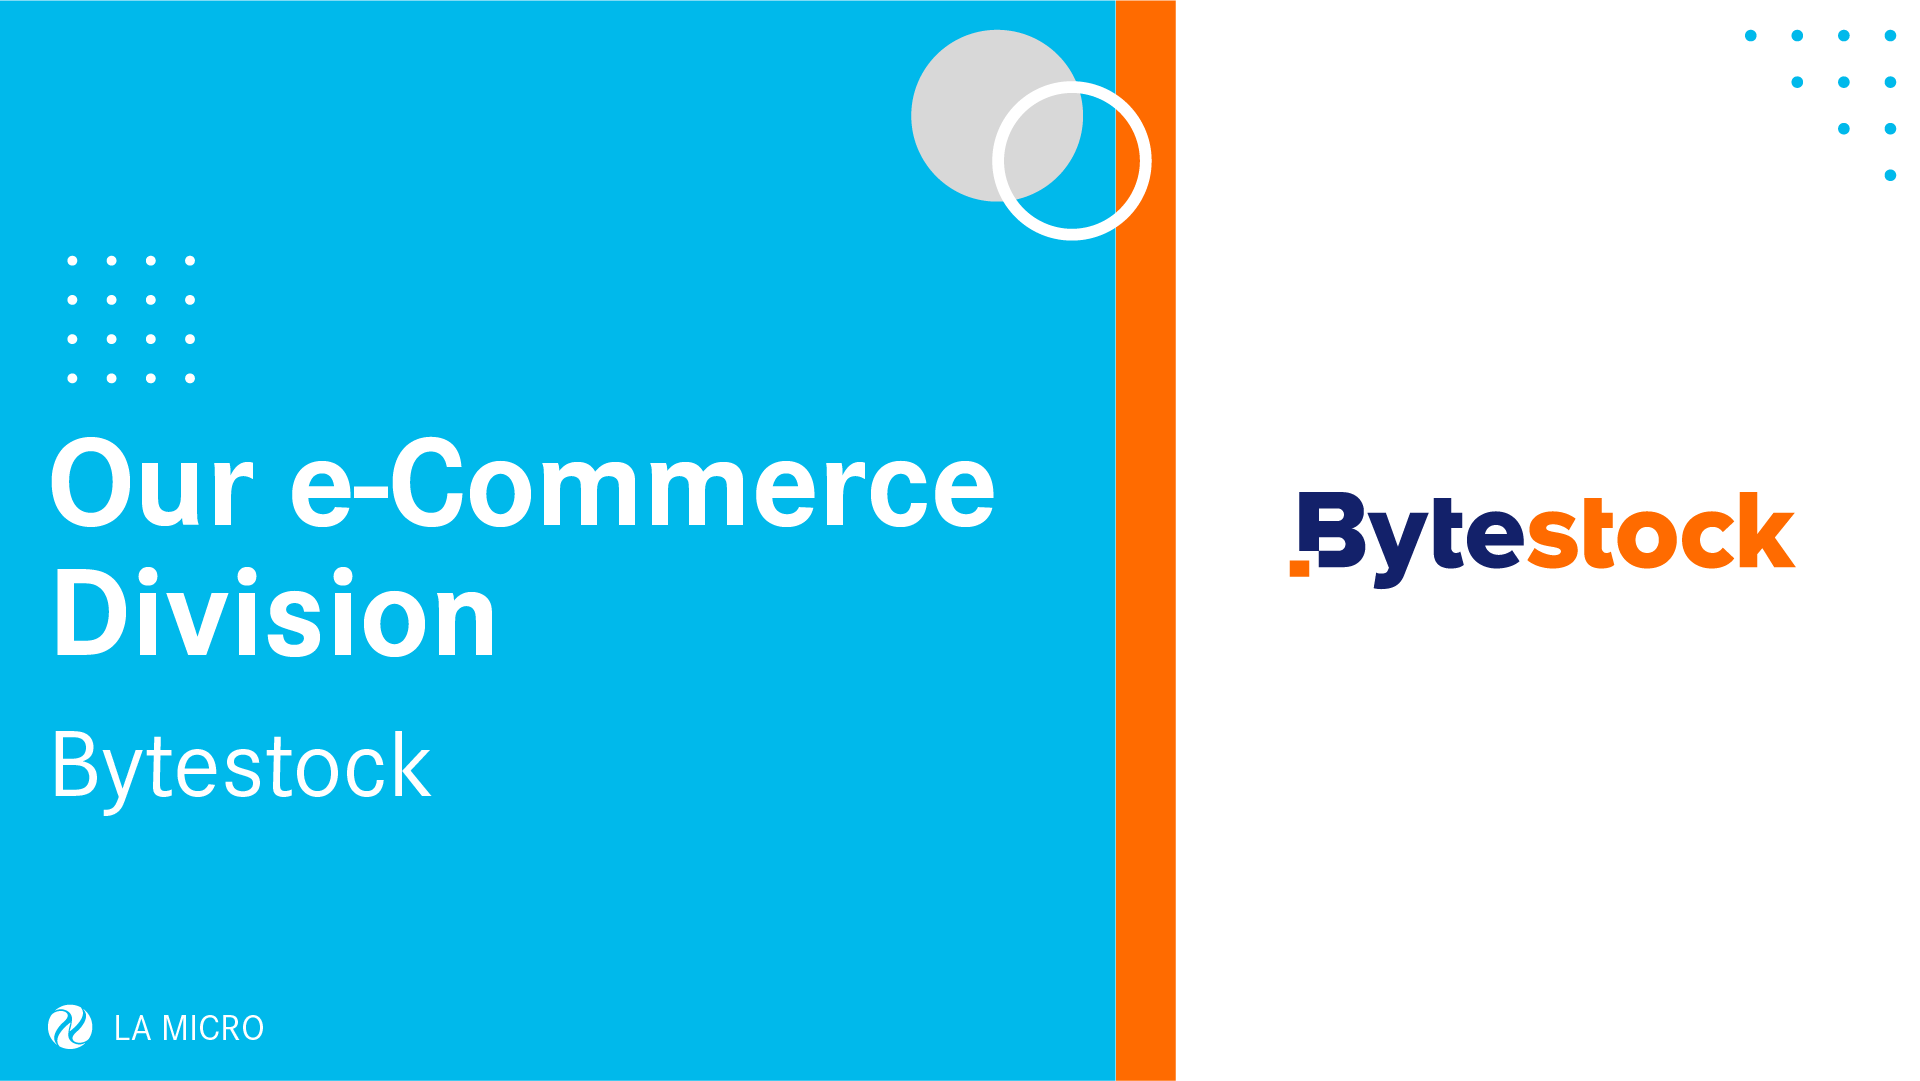 Meet Bytestock – The eCommerce Division